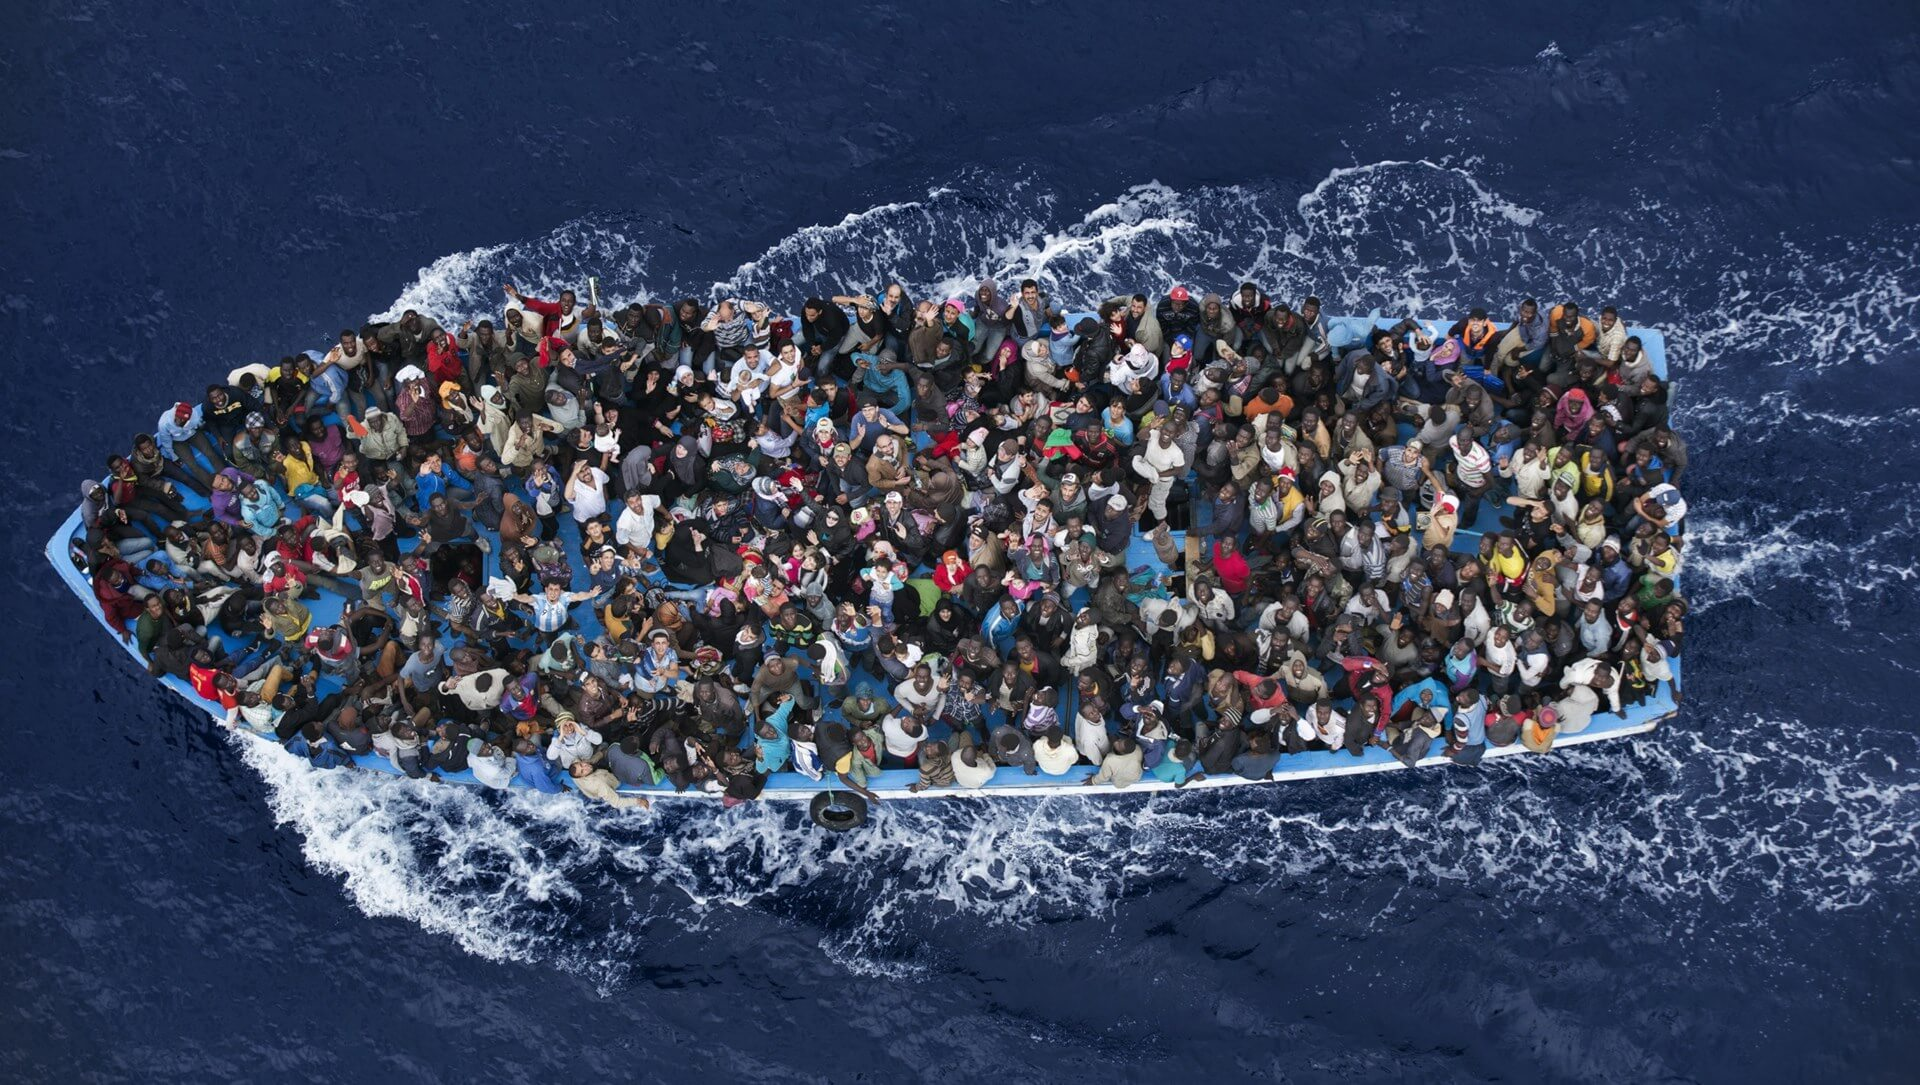 EU Policy, its approach and analysis of Migration Crisis.